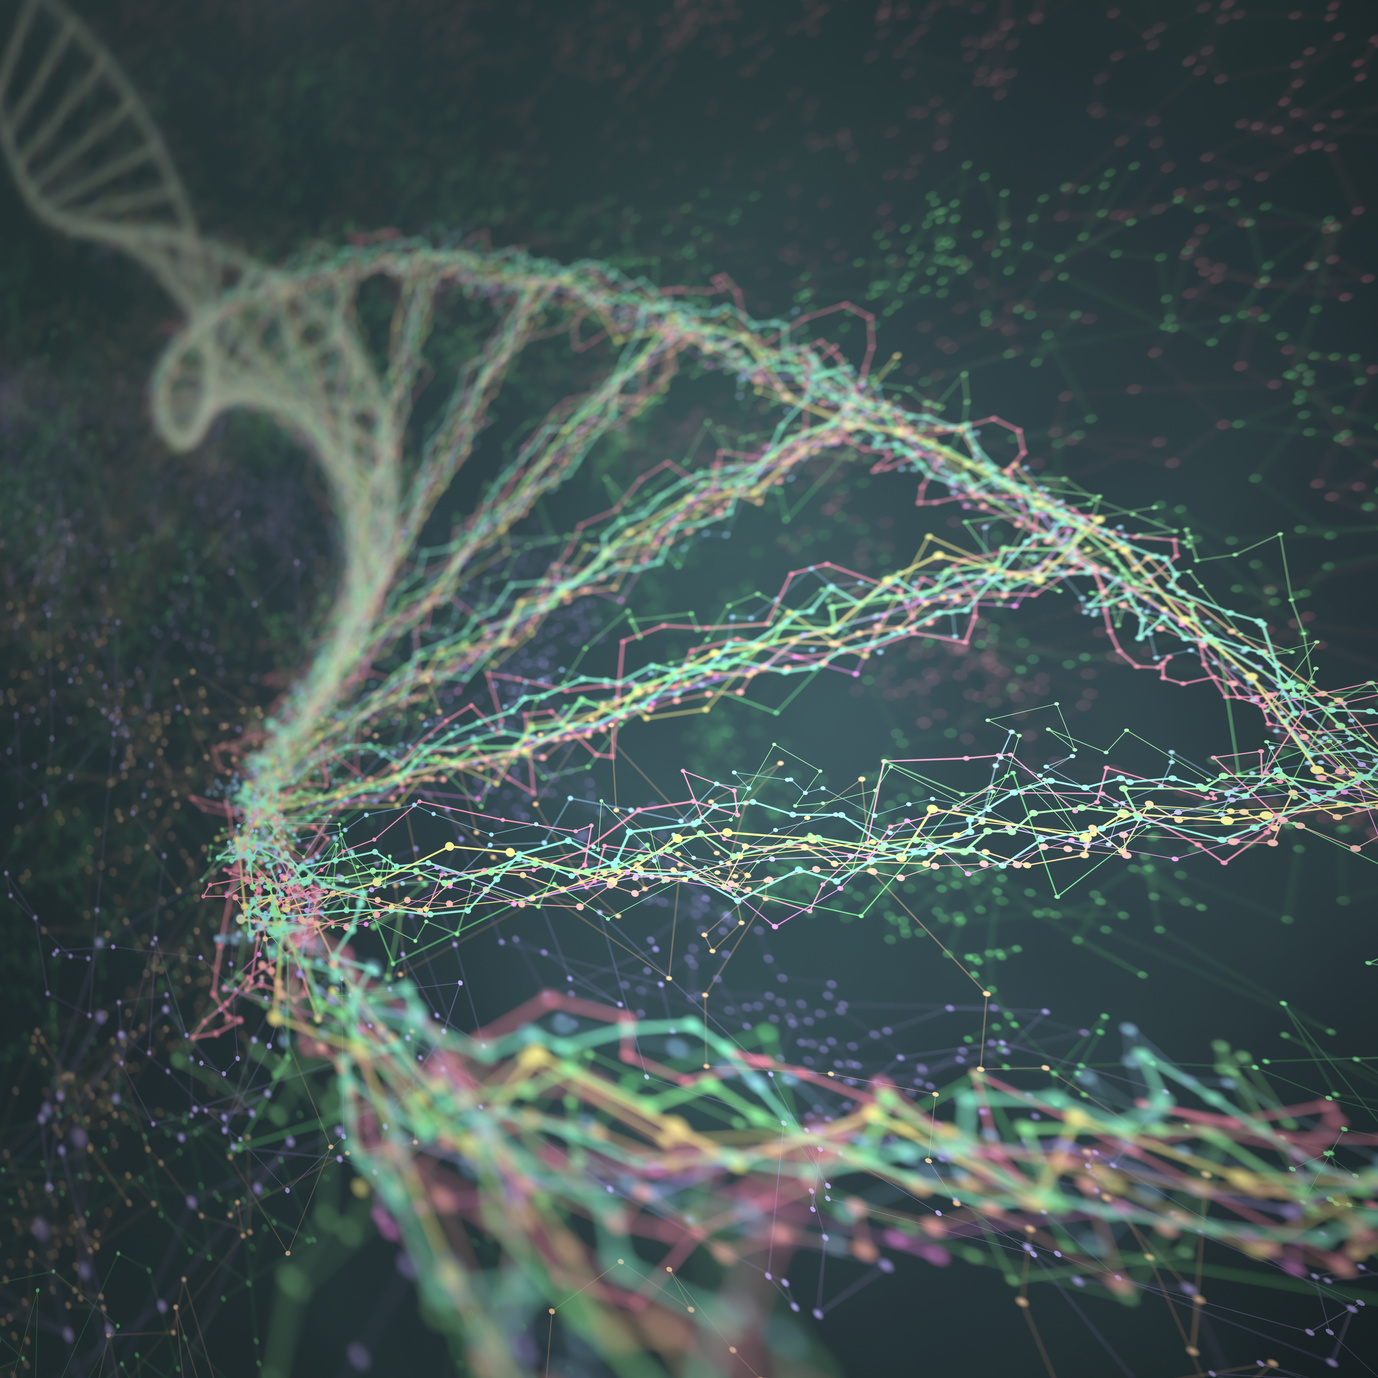 3D illustration. Dna helix connected by nodes and connections colored.